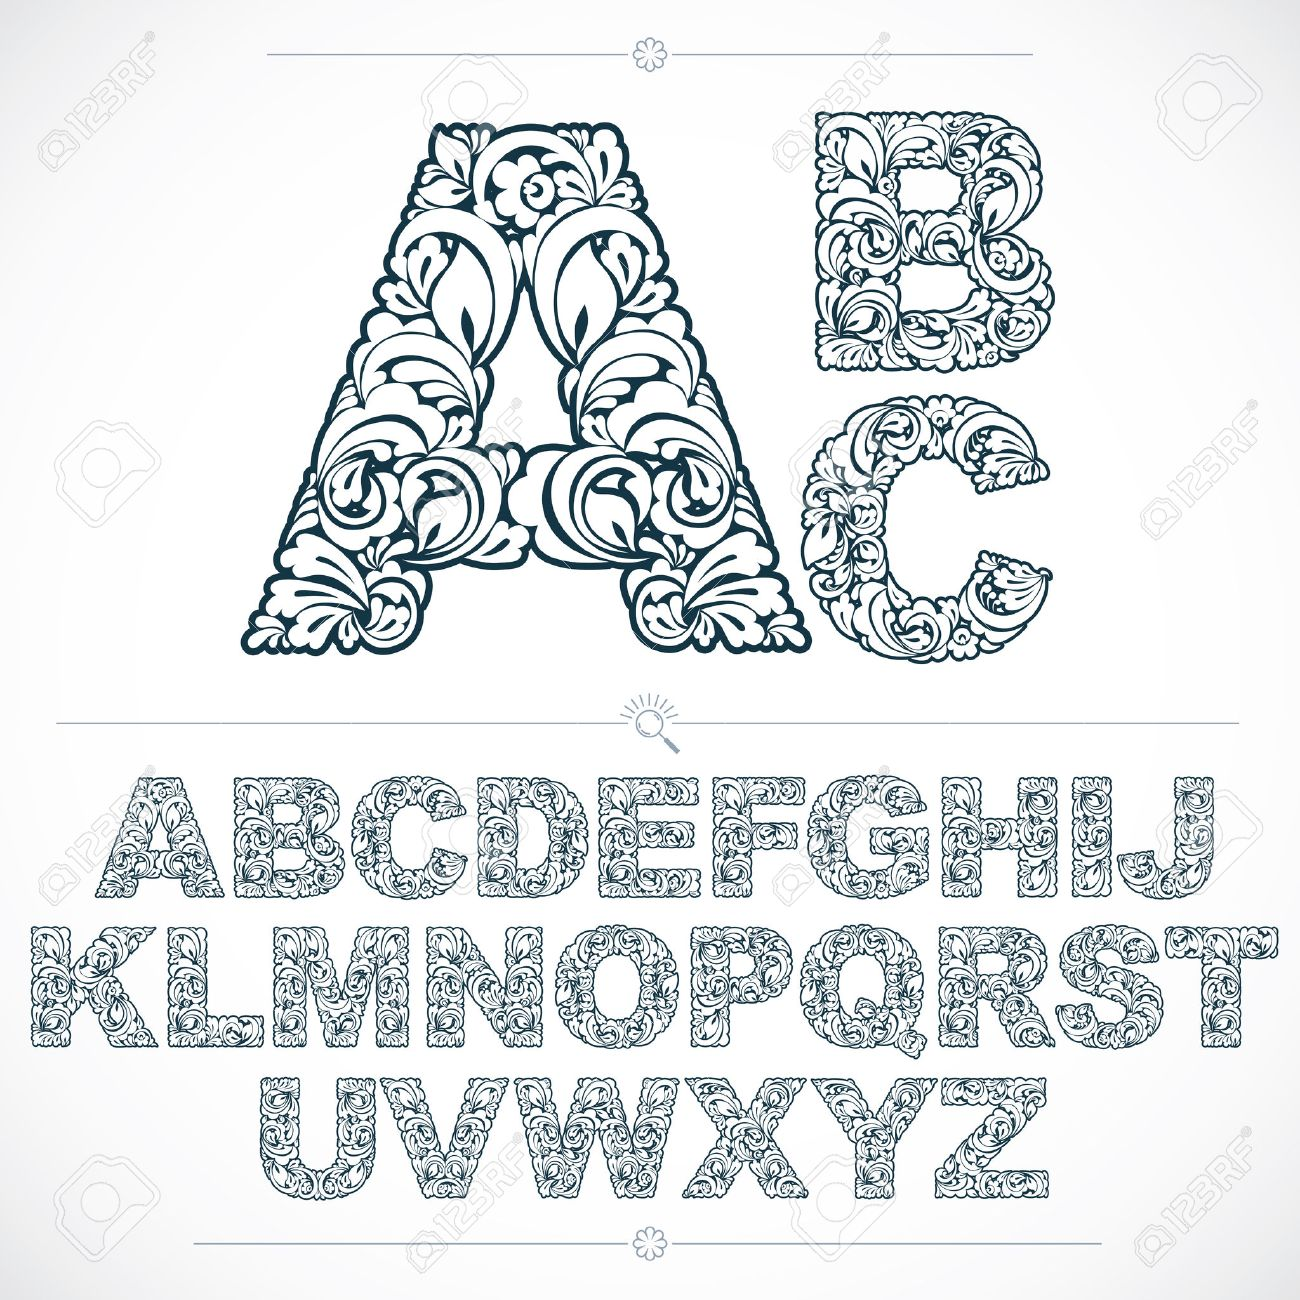 Floral alphabet sans serif letters drawn using abstract vintage pattern, spring leaves design. Black and white vector font created in natural eco style. - 54749470